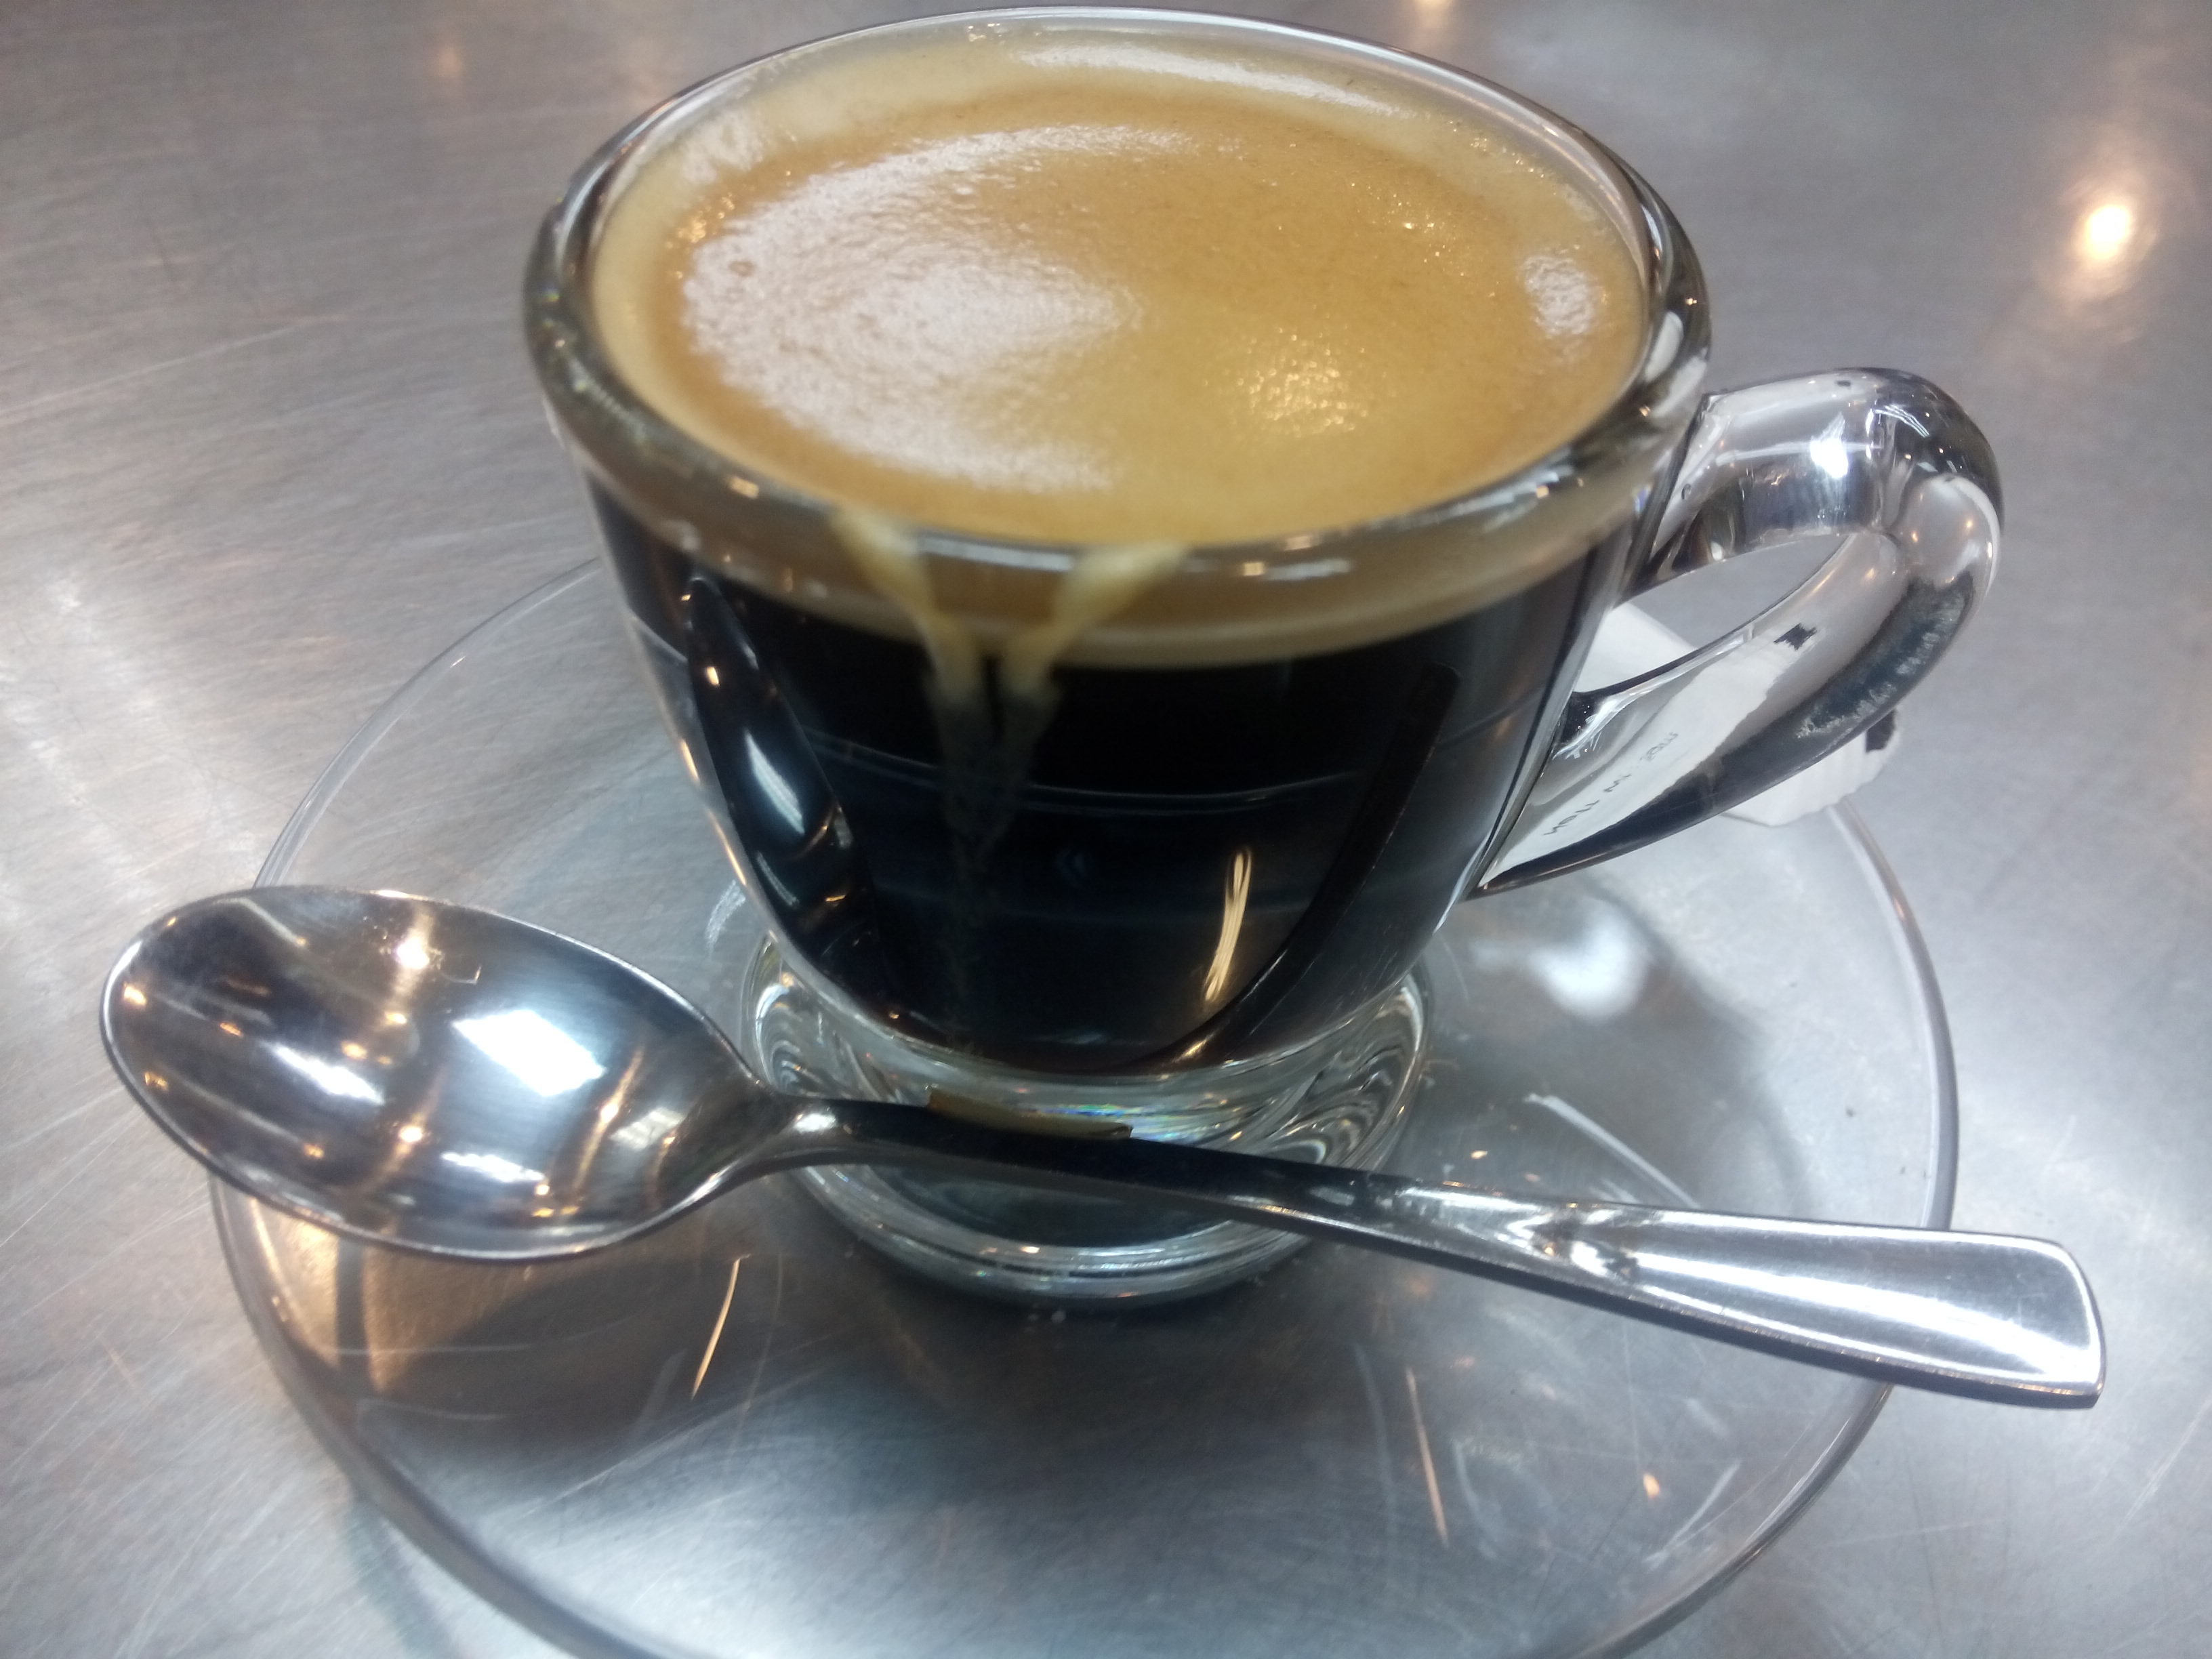 Foamy espresso in a glass cup with a shiny spoon